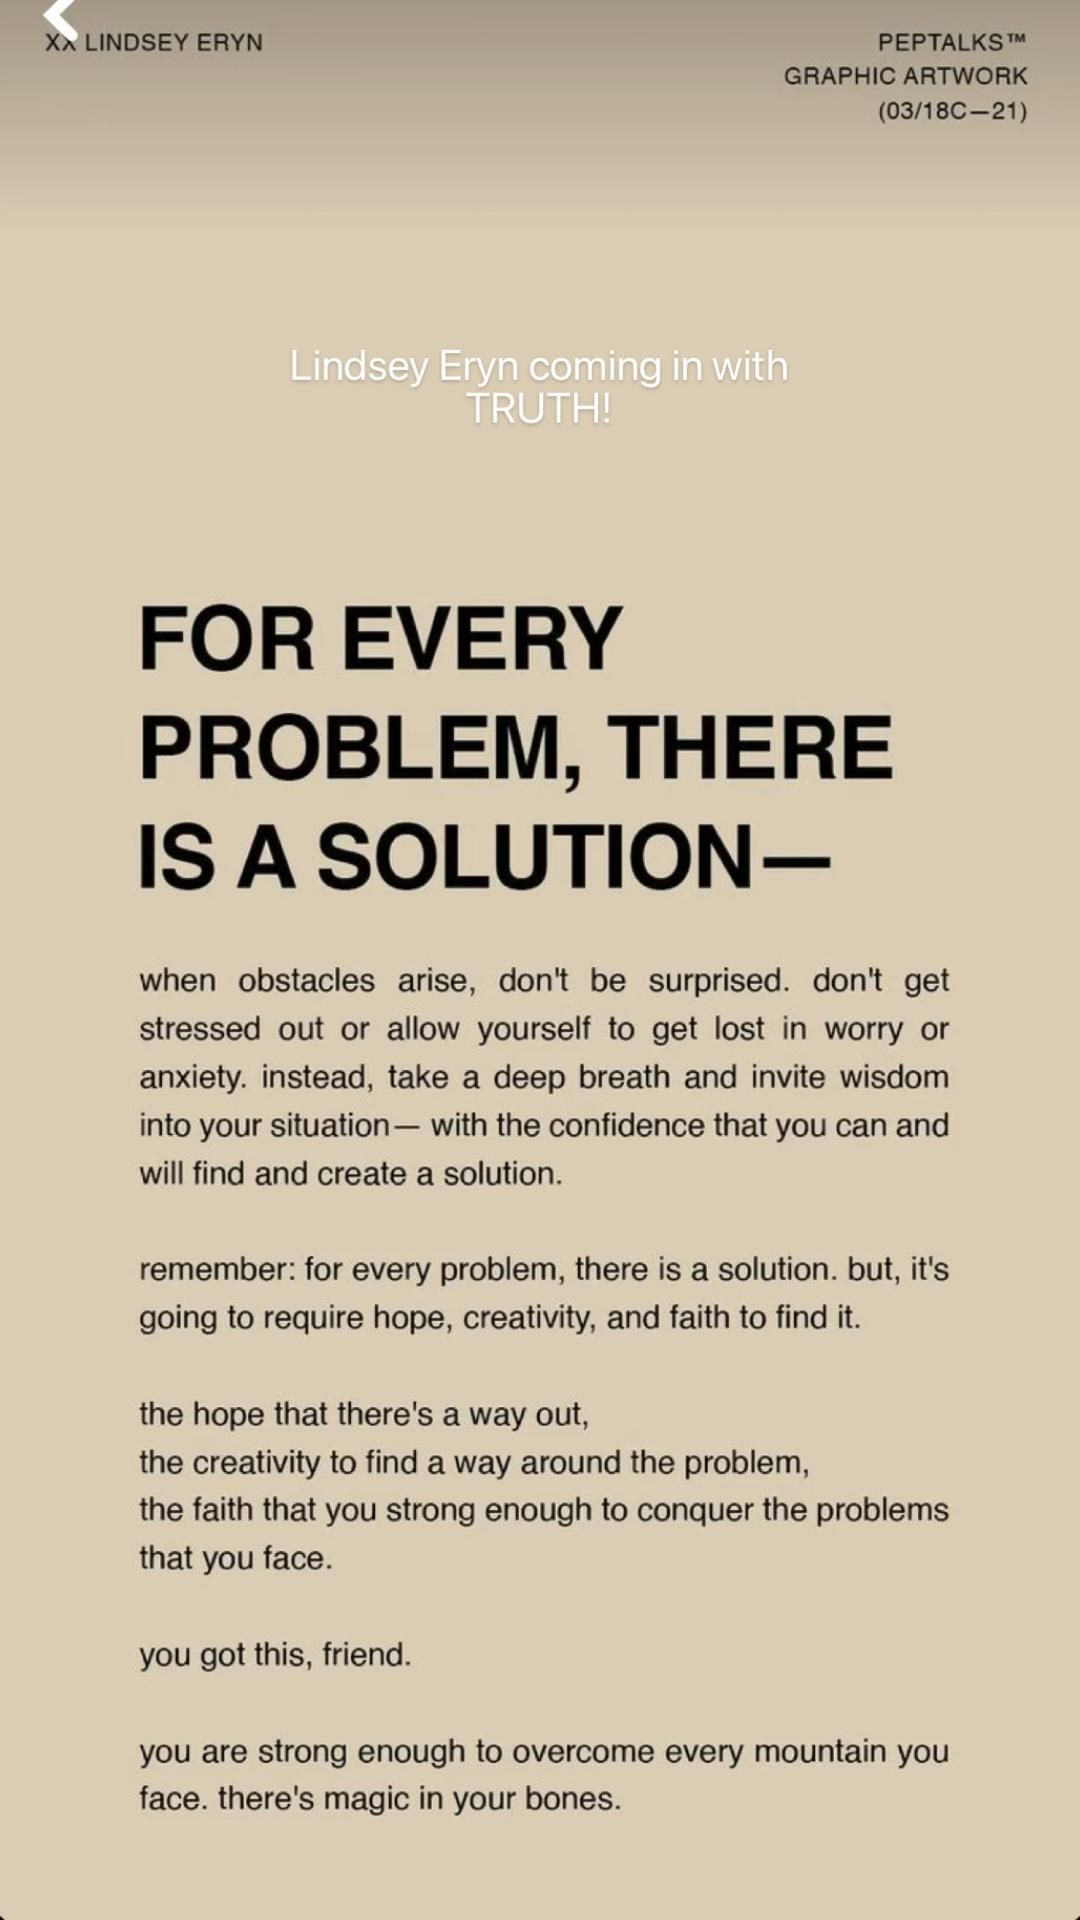 For every problem, there IS a solution. Lindsey Eryn coming in with TRUTH!